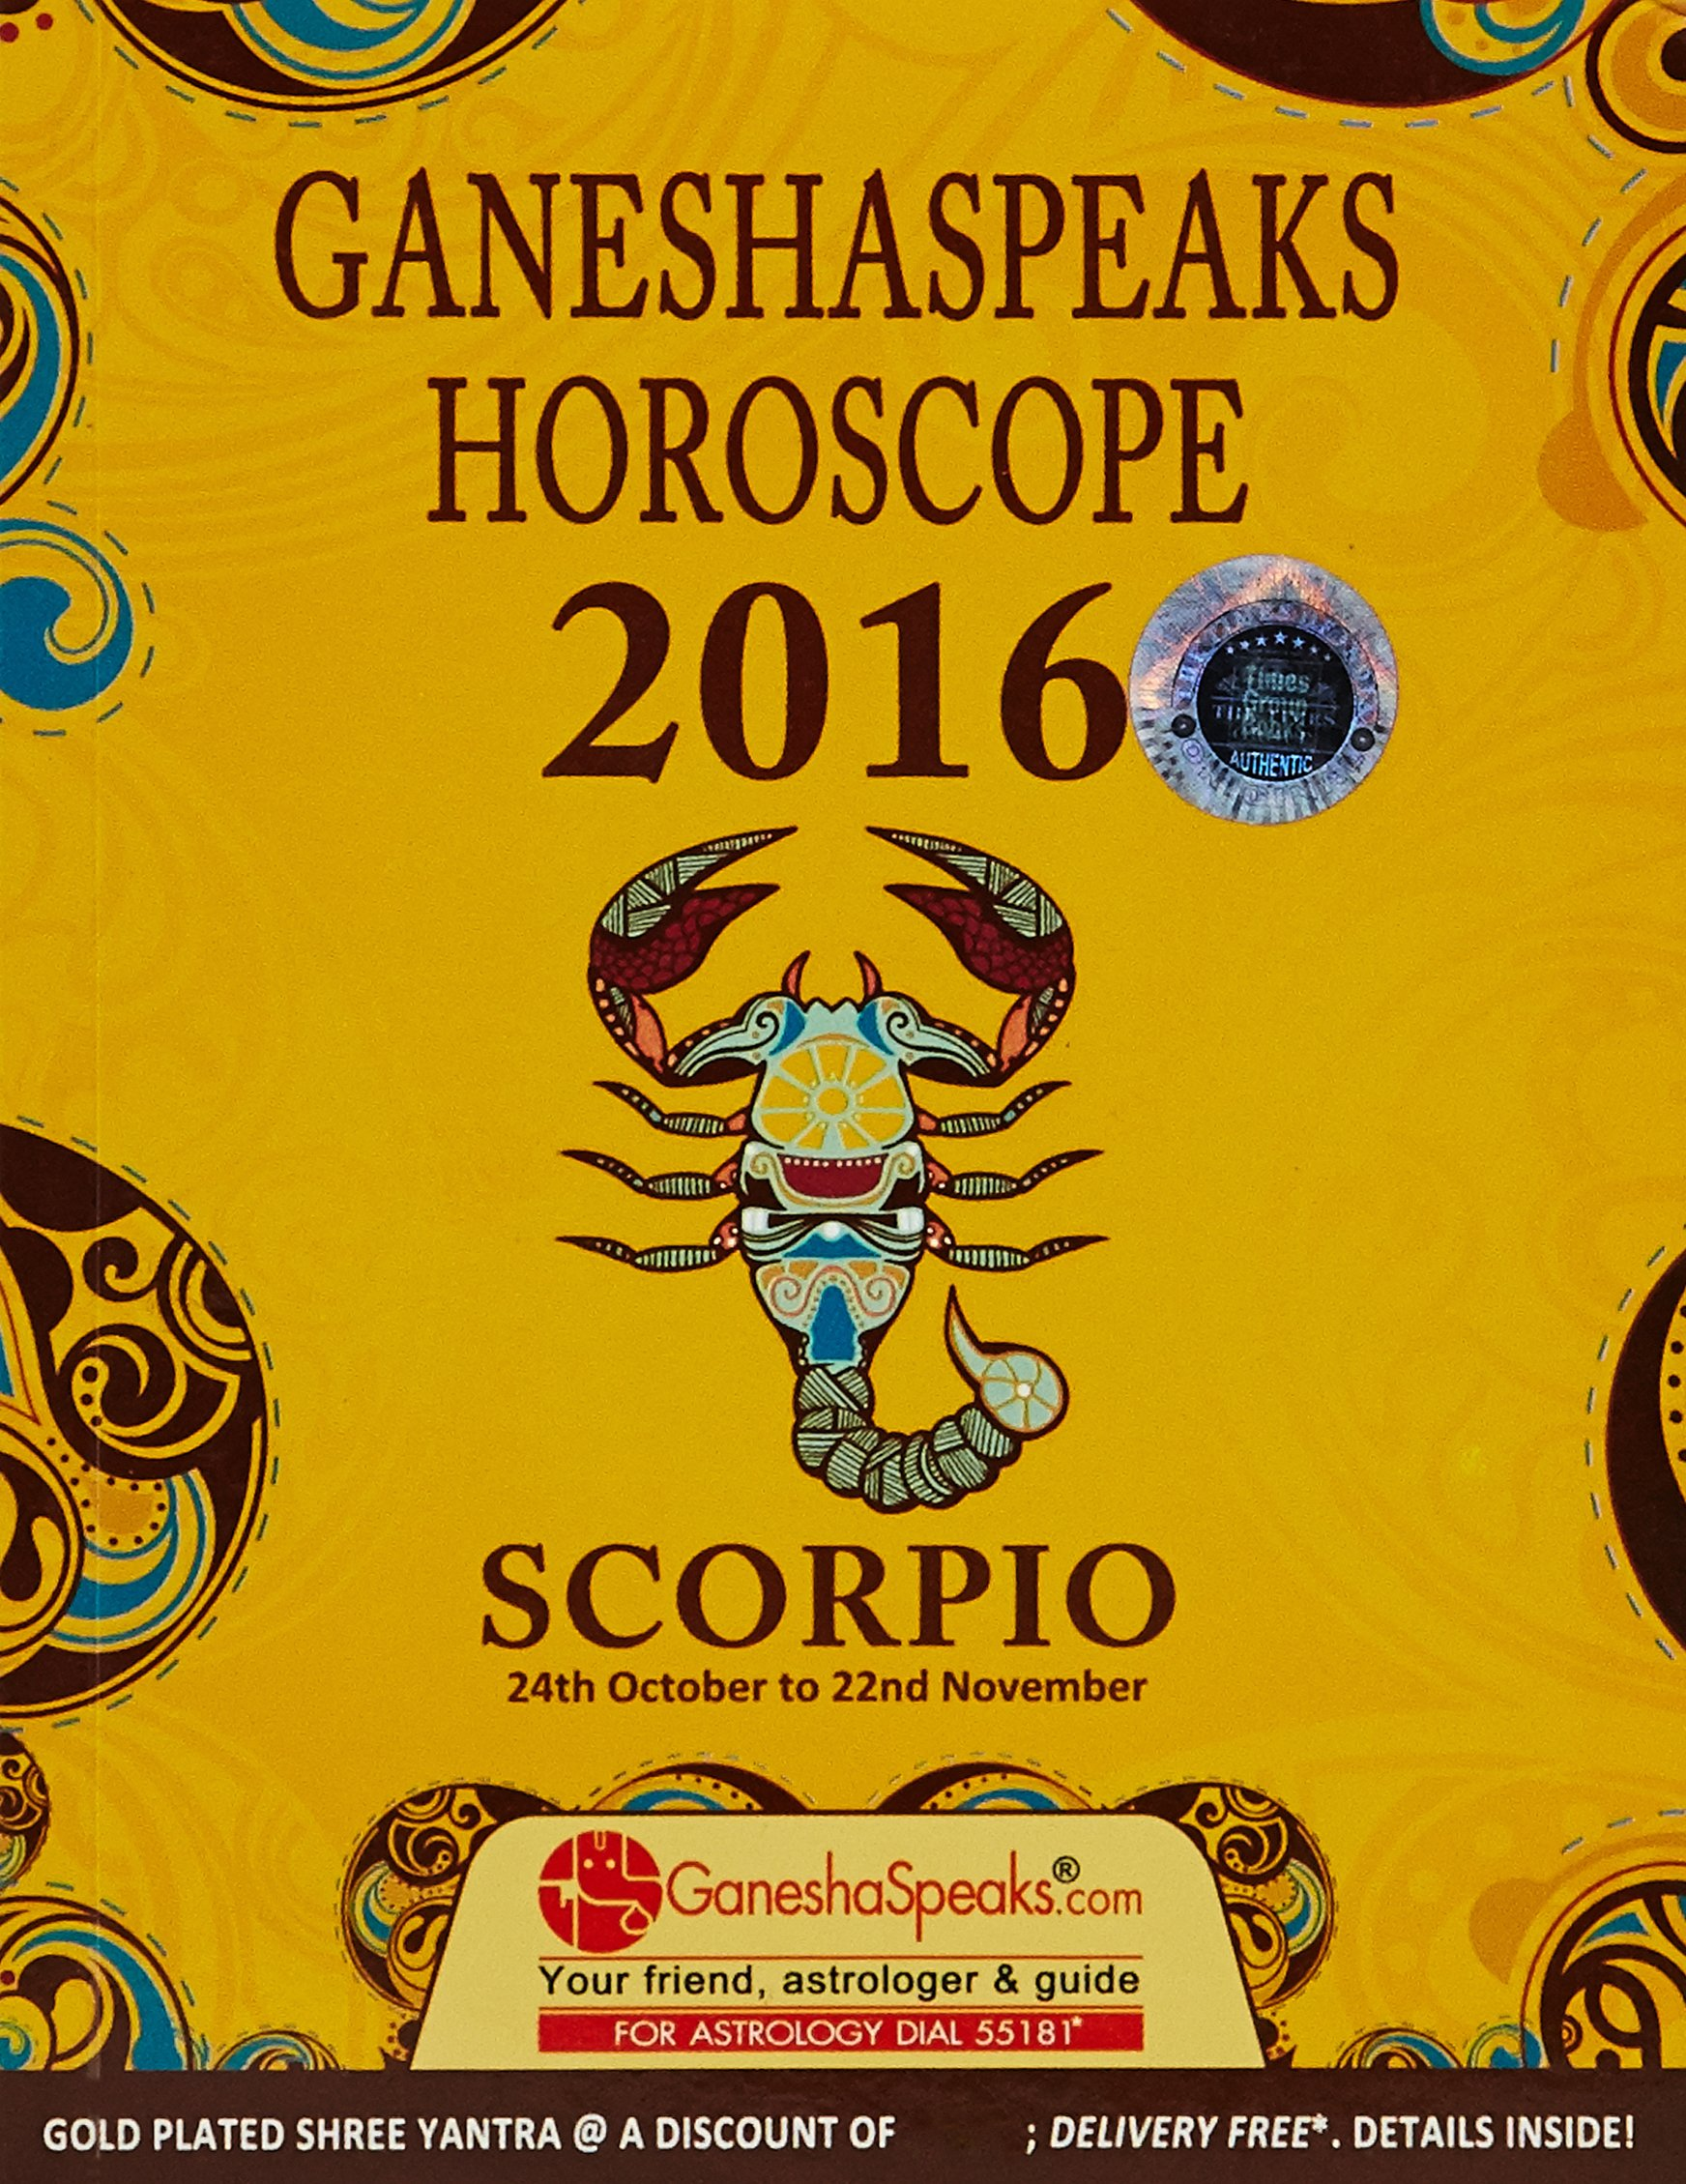 Scorpio Horoscope 2016: Amazon in: GaneshaSpeaks: Books